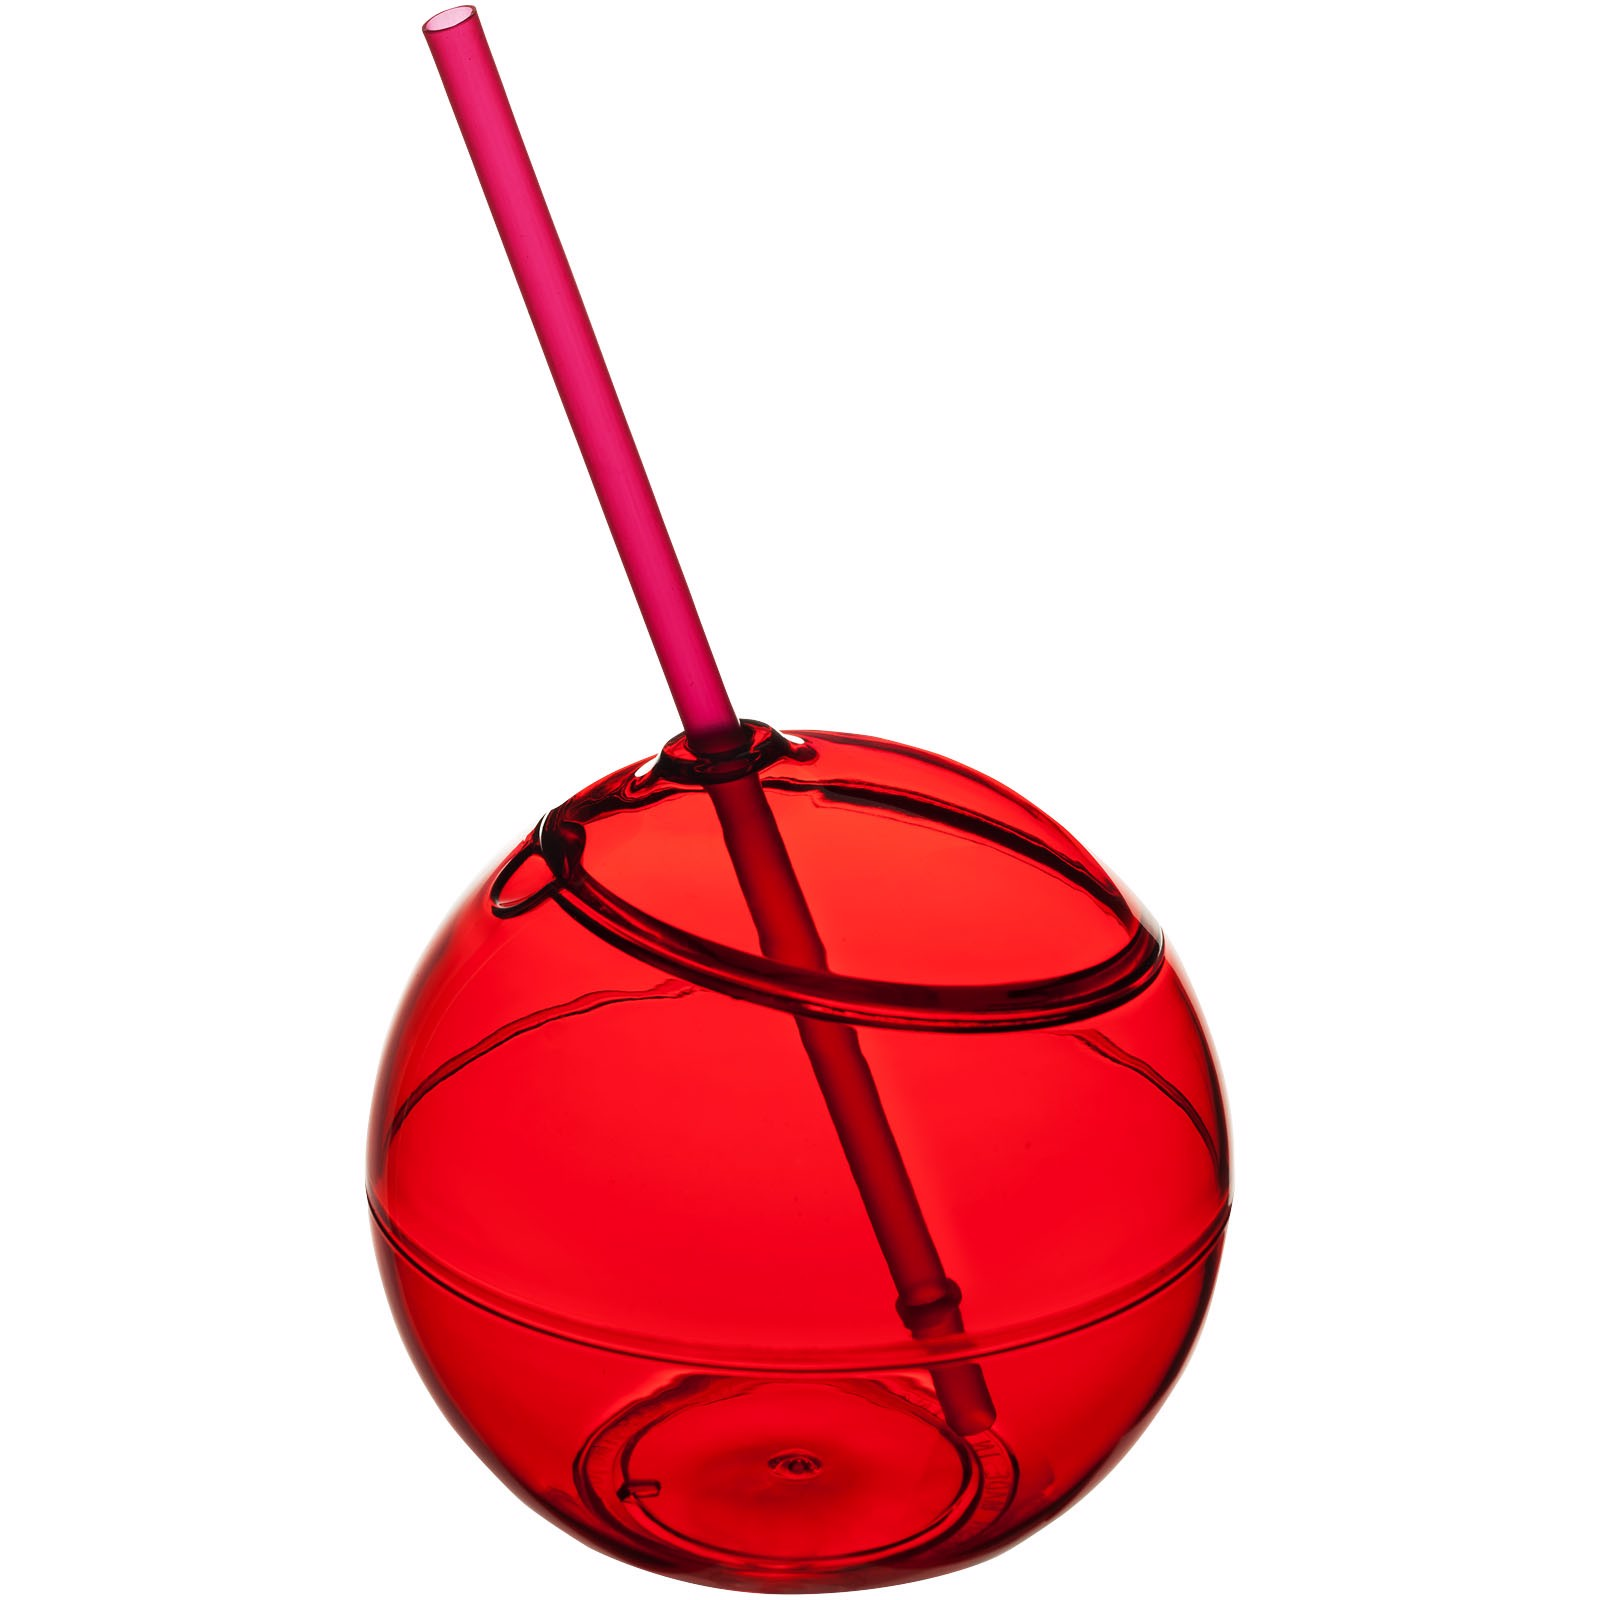 Fiesta 580 ml beverage ball with straw - Red